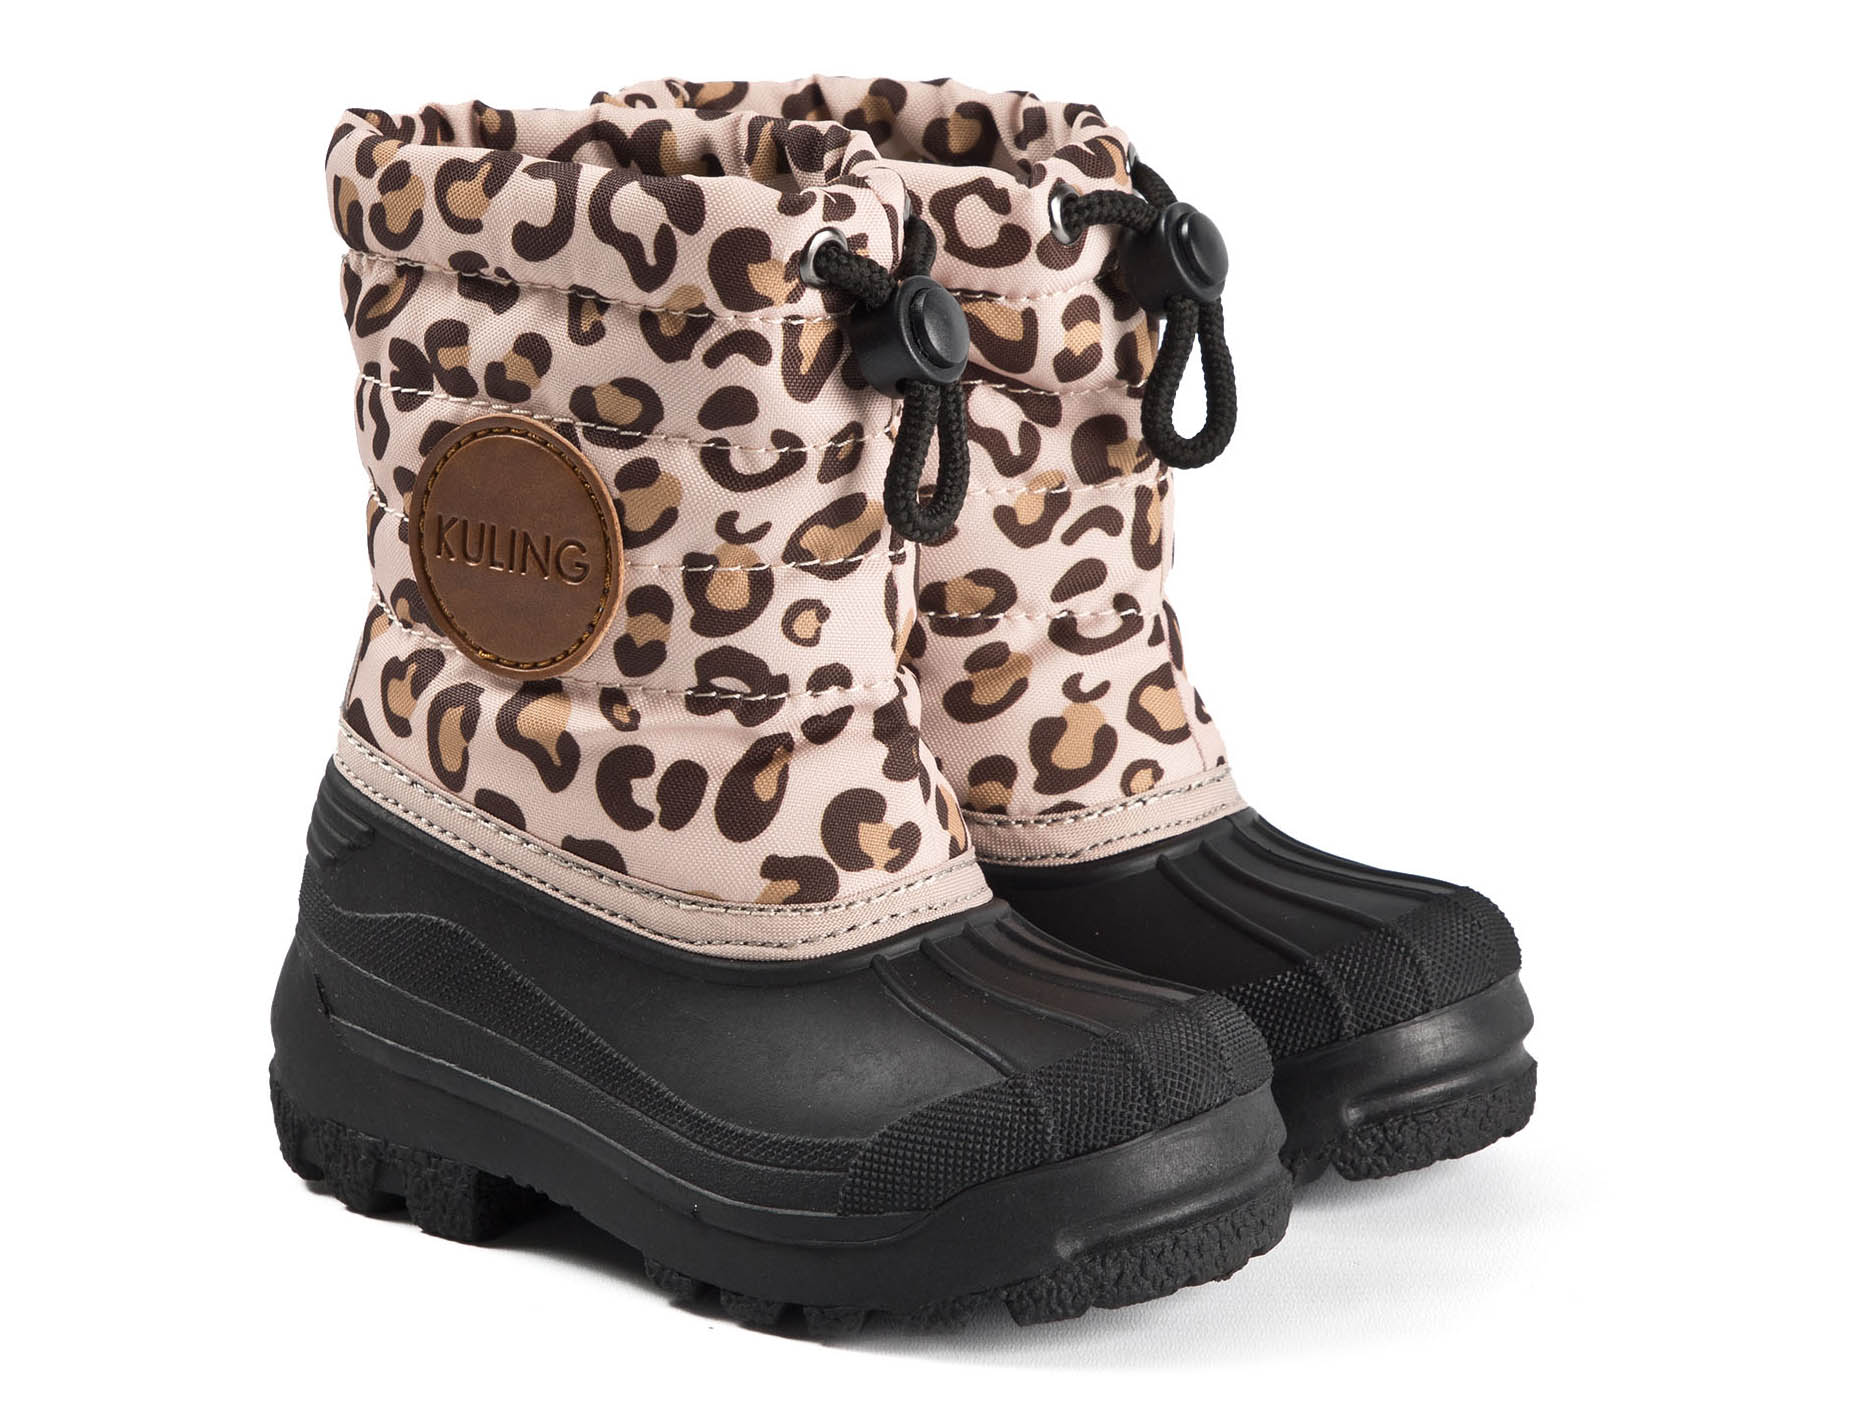 UK Winter Kids Girls Boys Snow Fur Lined Boots Toddler Warm Shoes Comfortable Sz